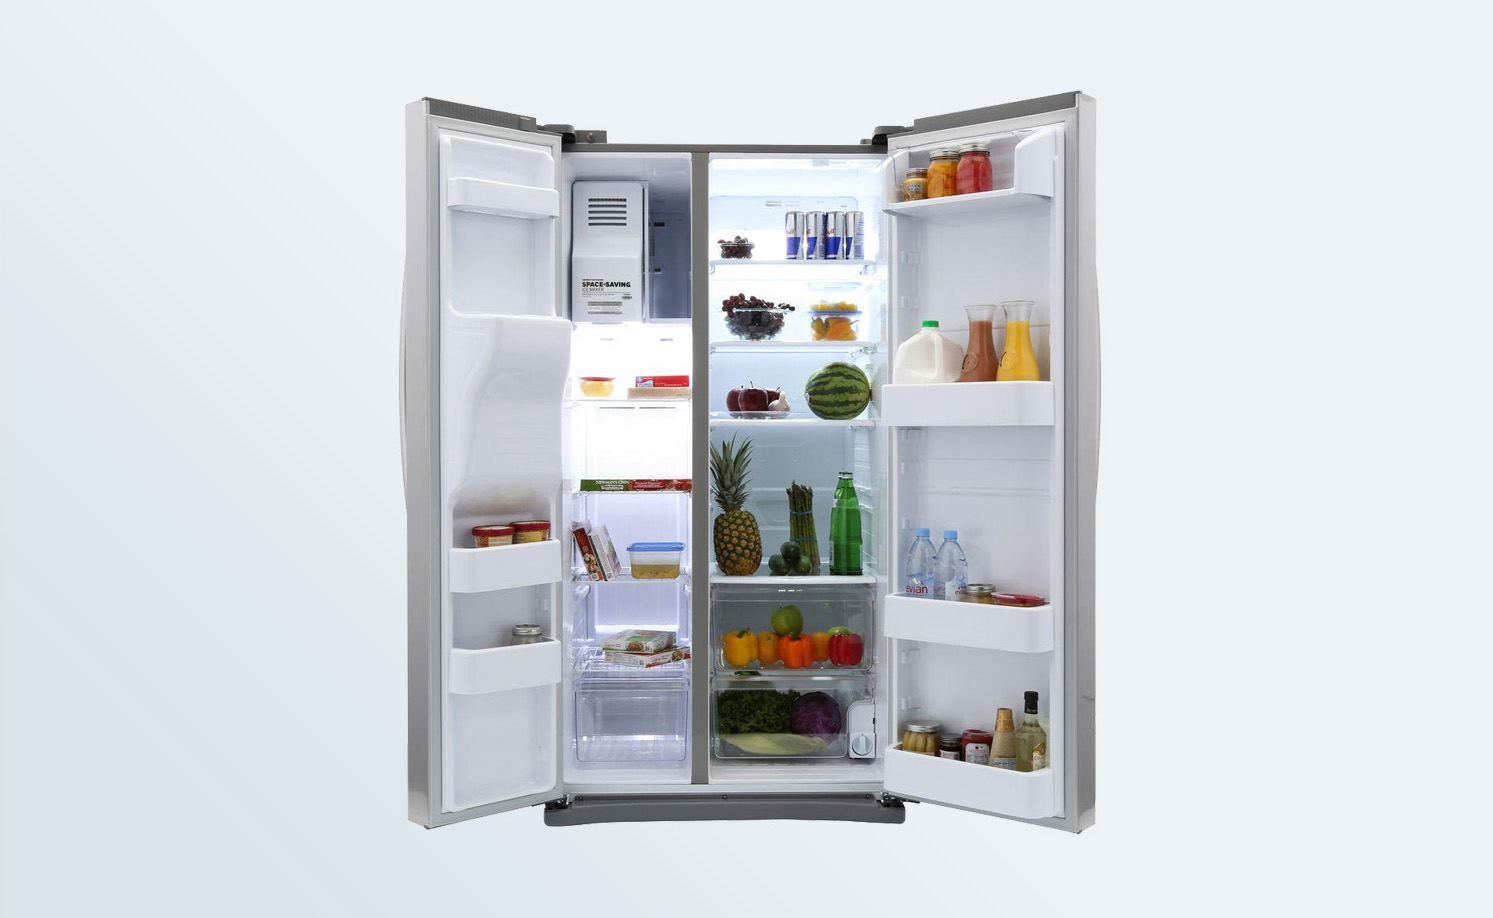 Best Side-by-Side Refrigerators 2019 - Fridge/Freezer